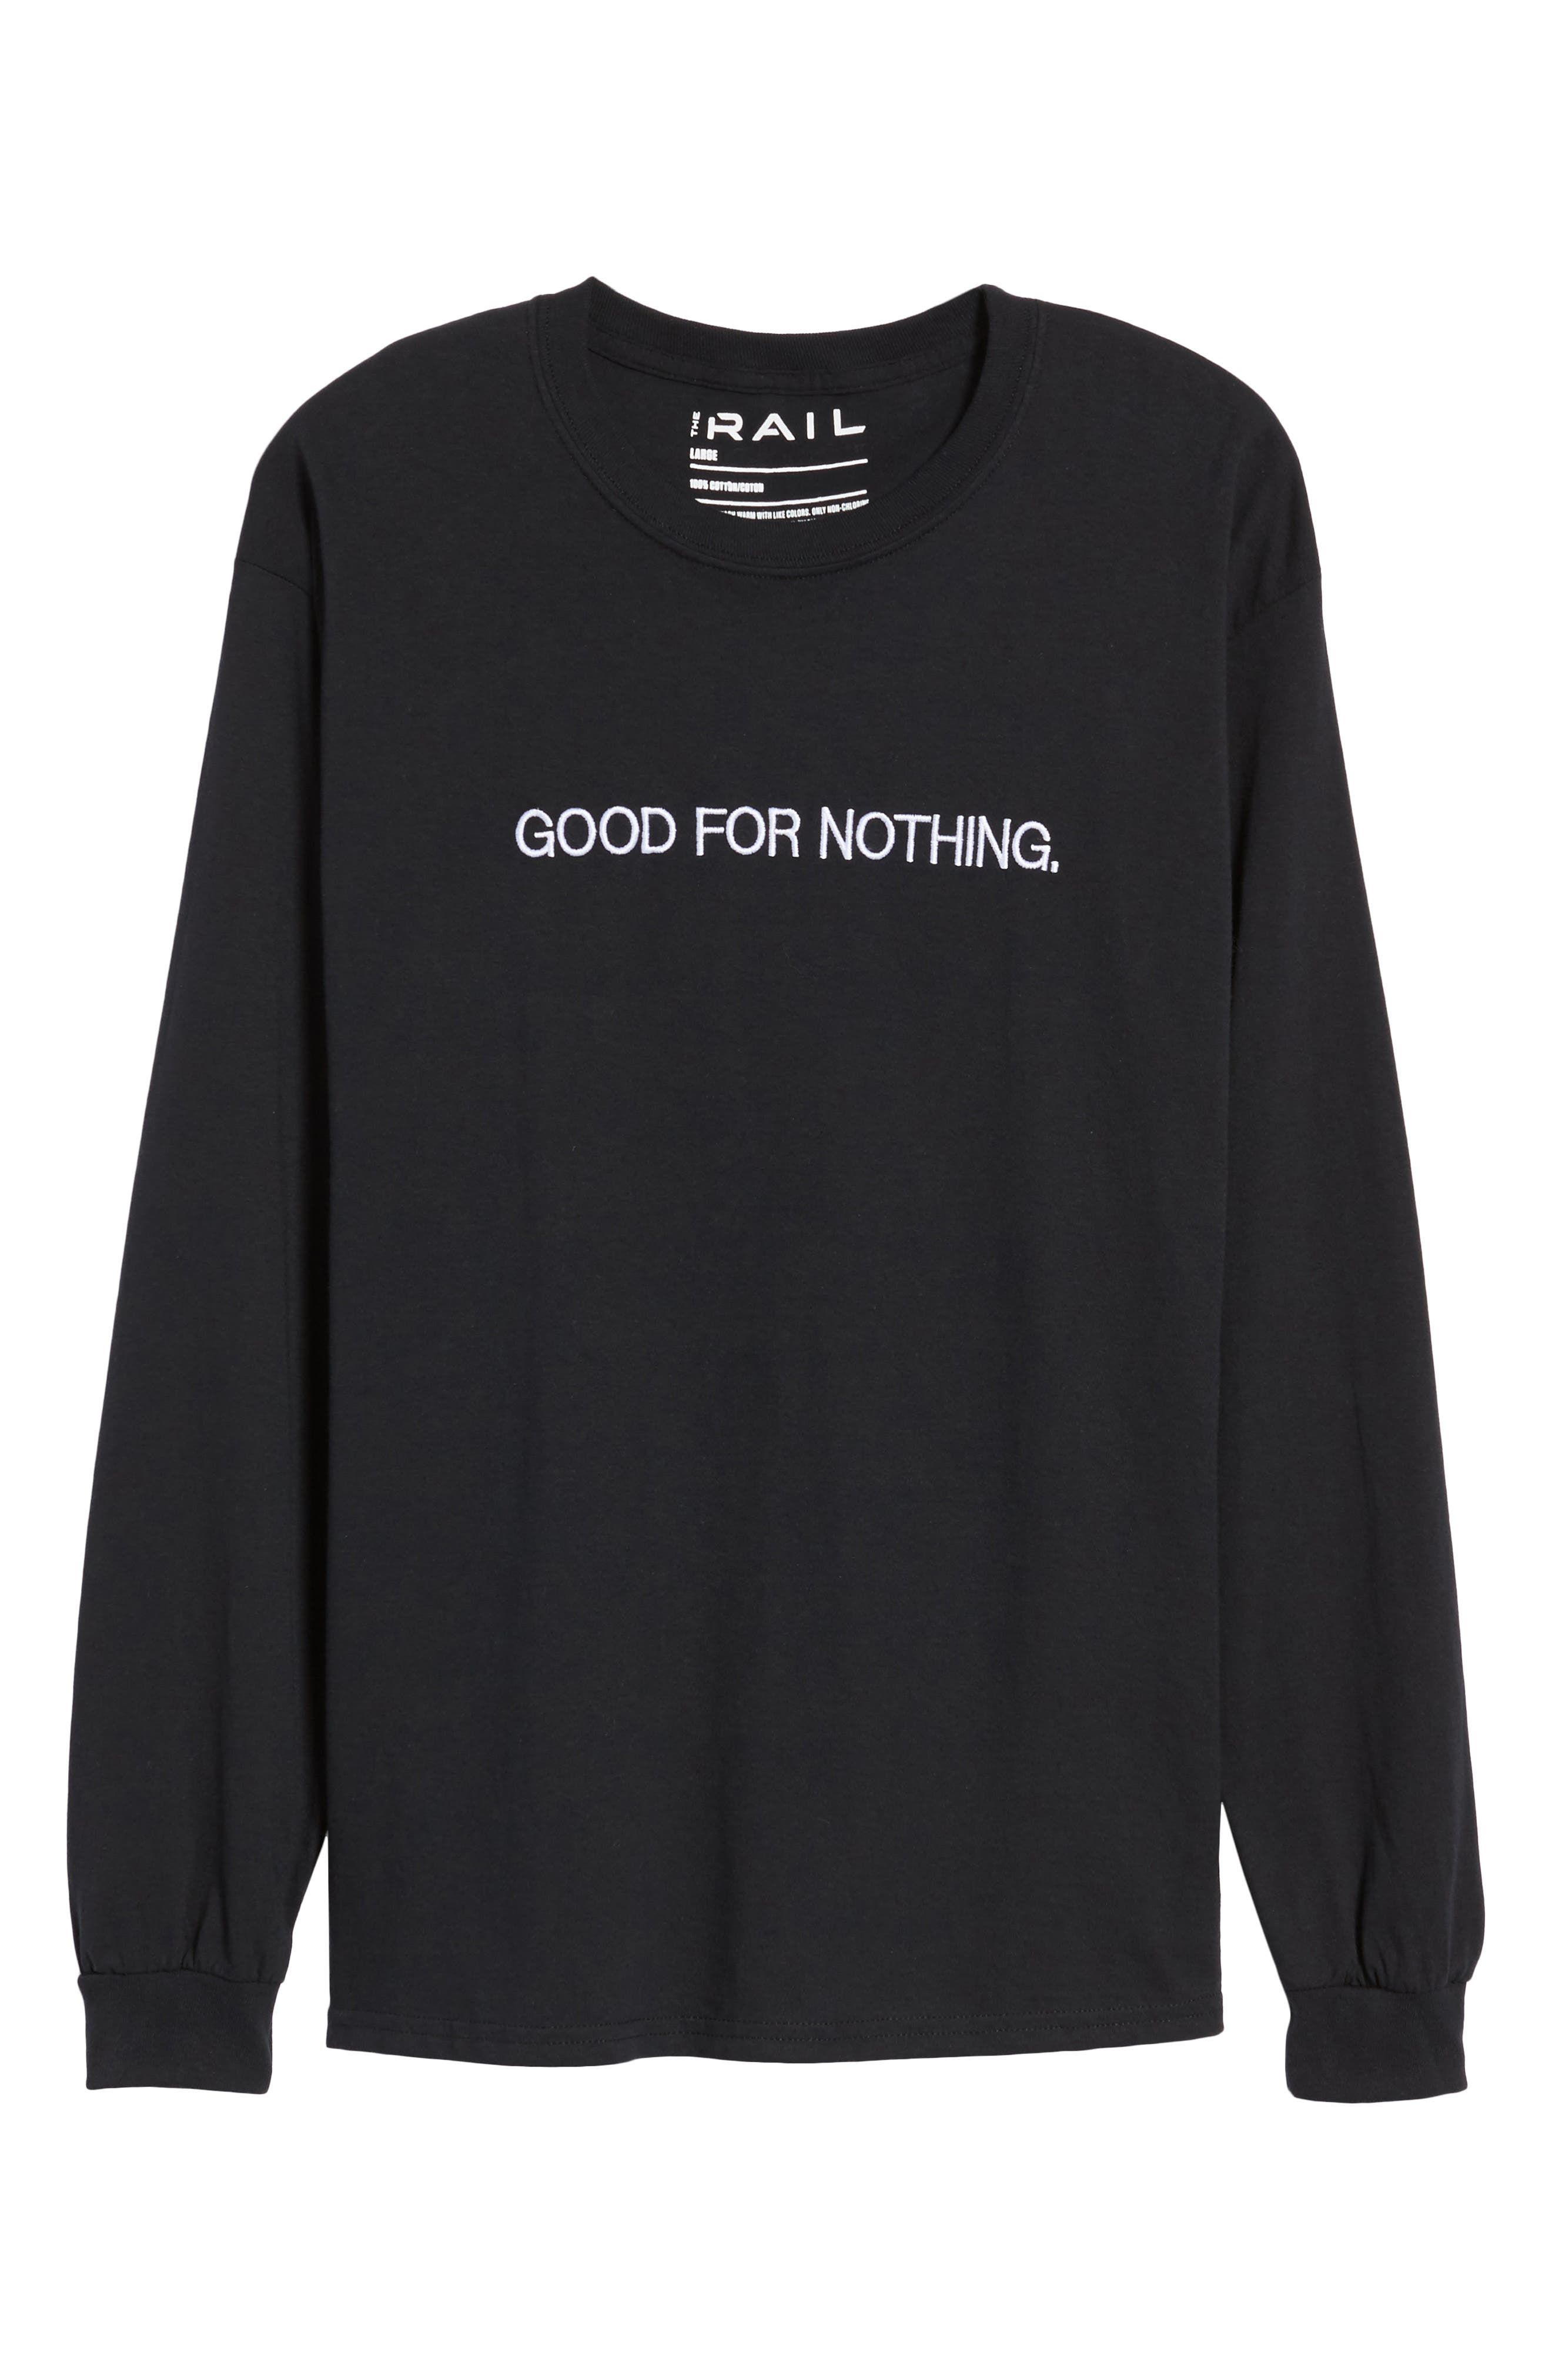 Good for Nothing Embroidered T-Shirt,                             Alternate thumbnail 6, color,                             001